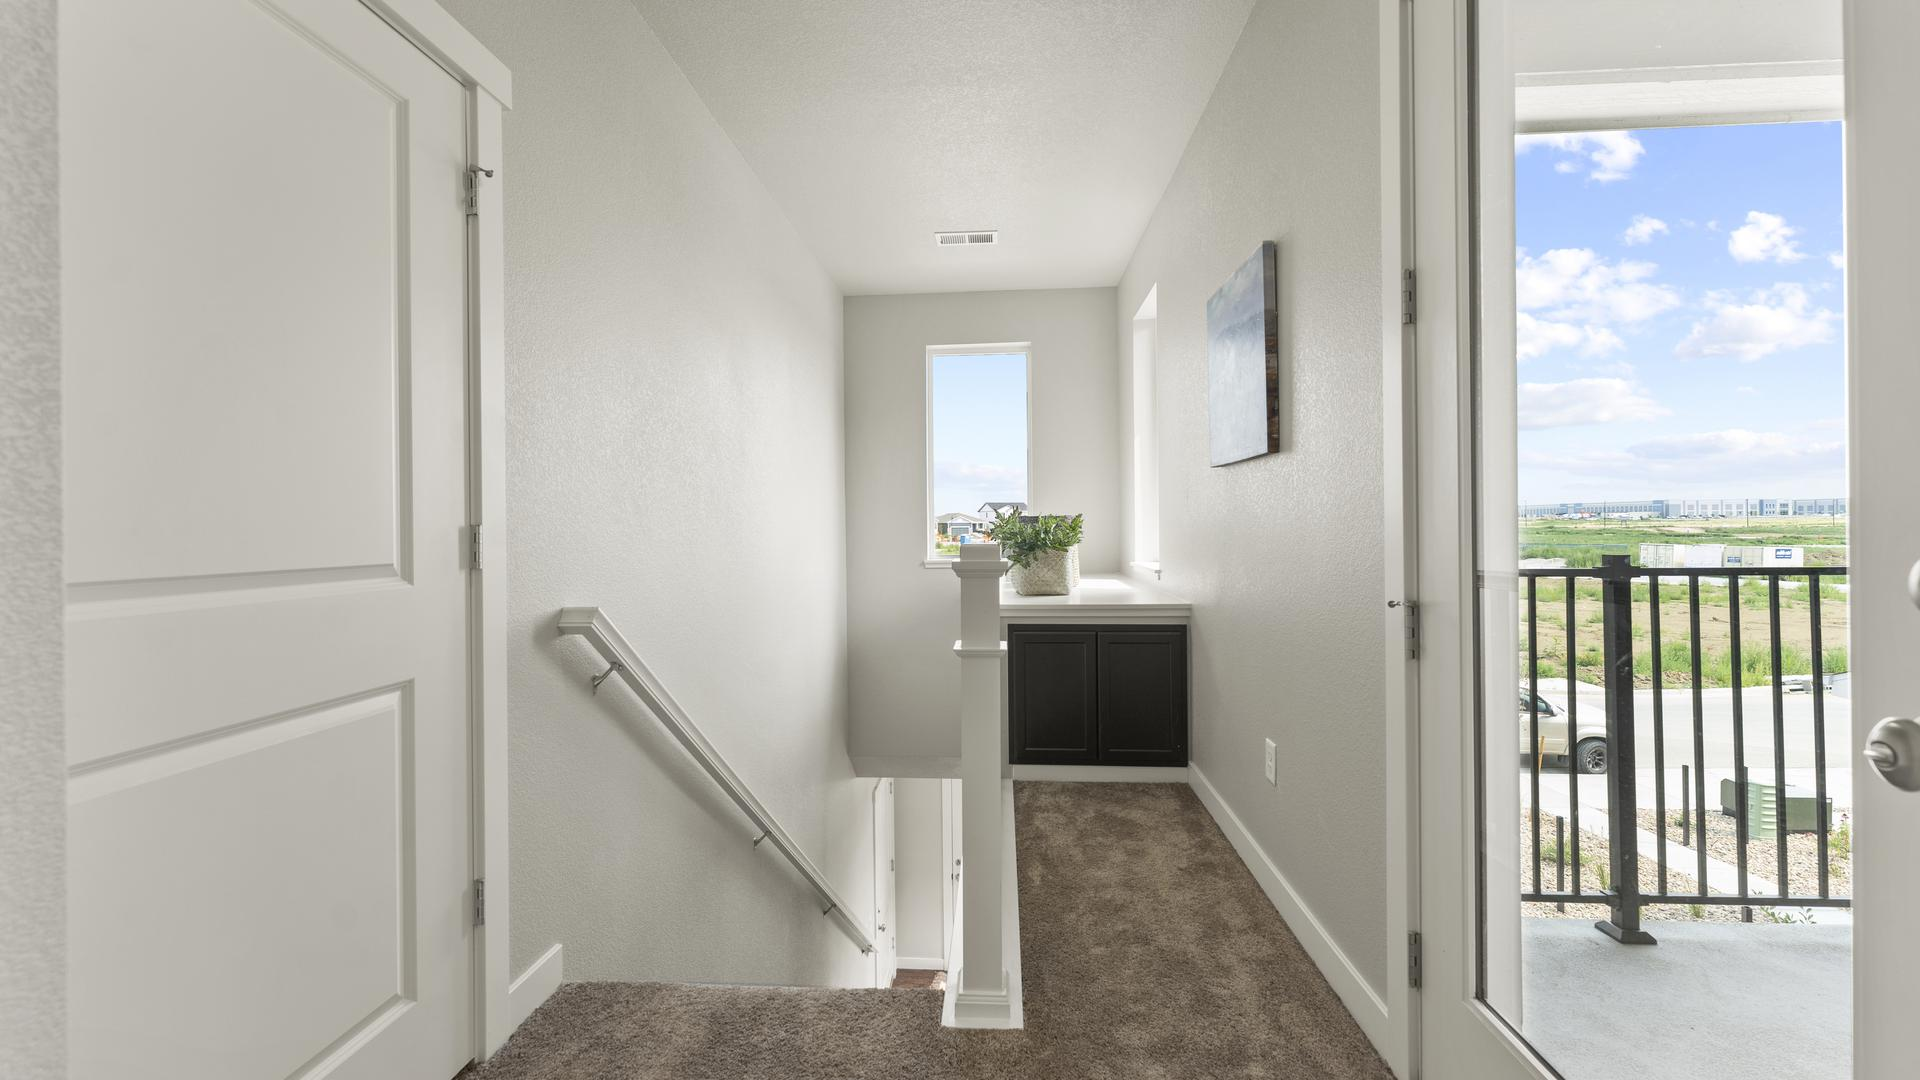 Storage - Not Actual Home - Finishes Will Vary